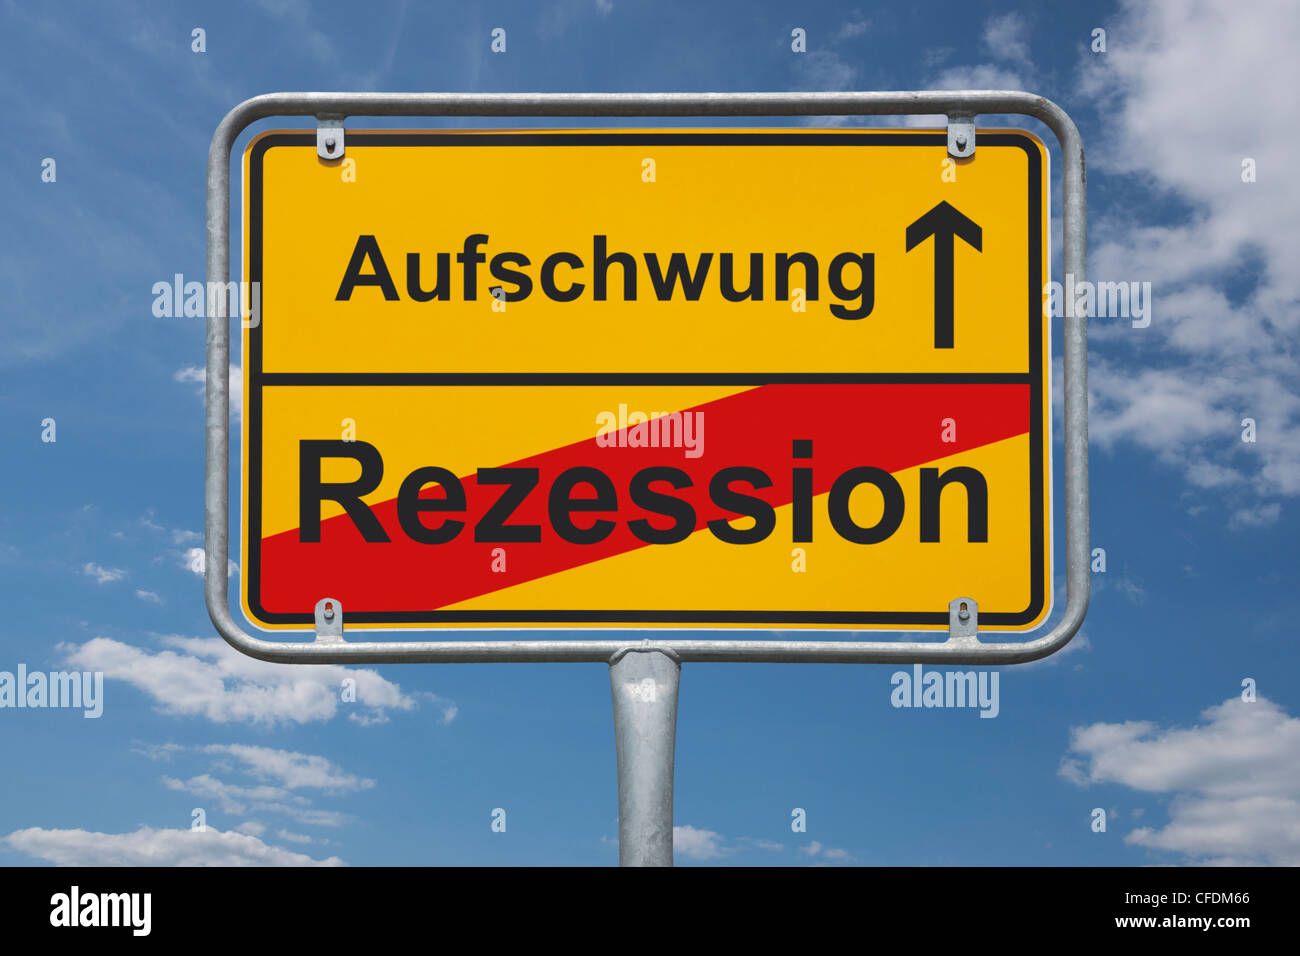 Town sign Germany, End of the town with the inscription end of downturn, beginning upswing, background sky. Stock Photo